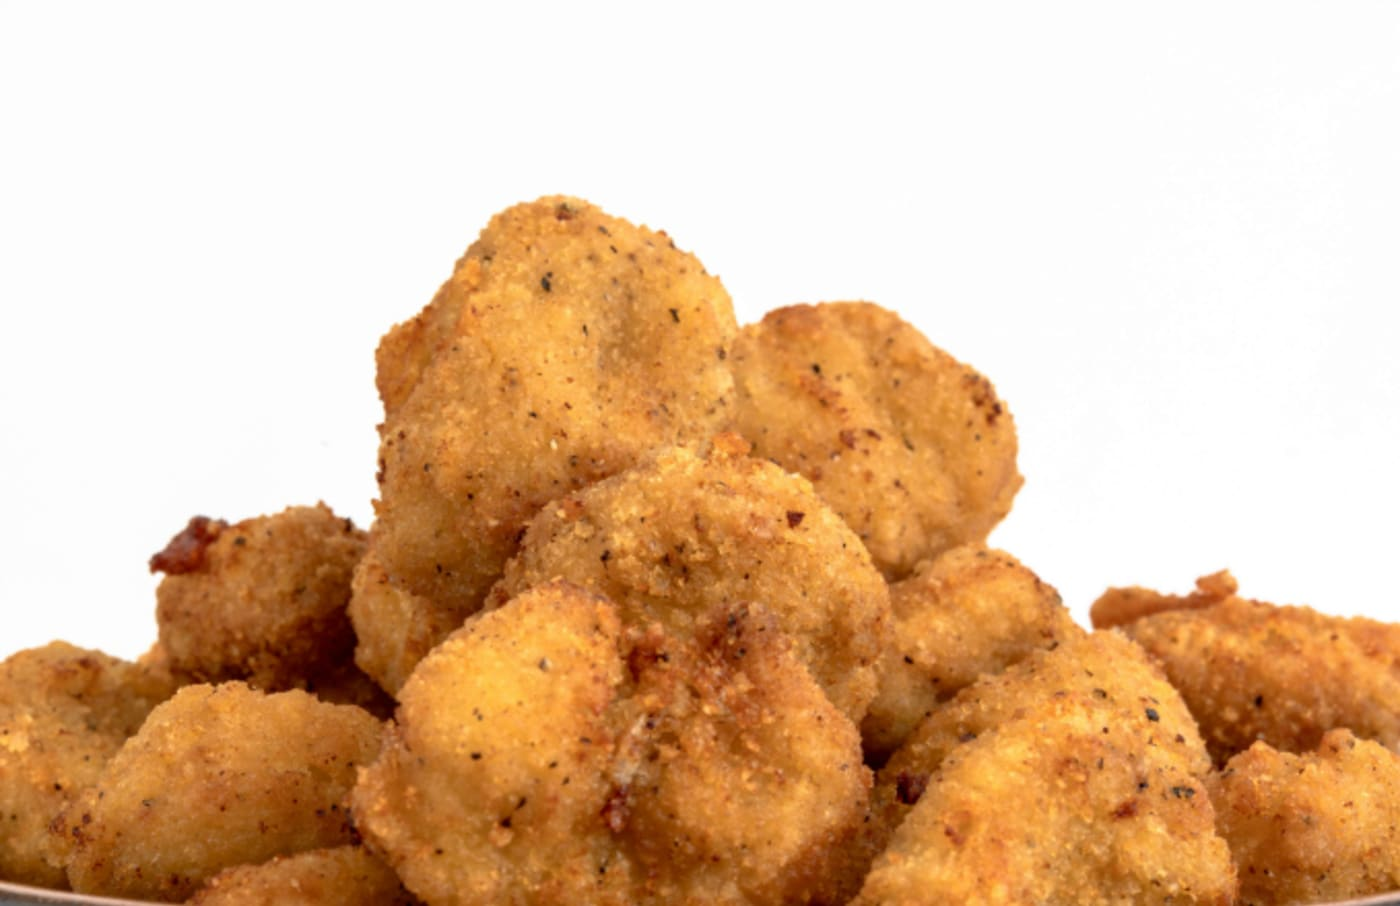 Close up of Chicken Nuggets over a white background